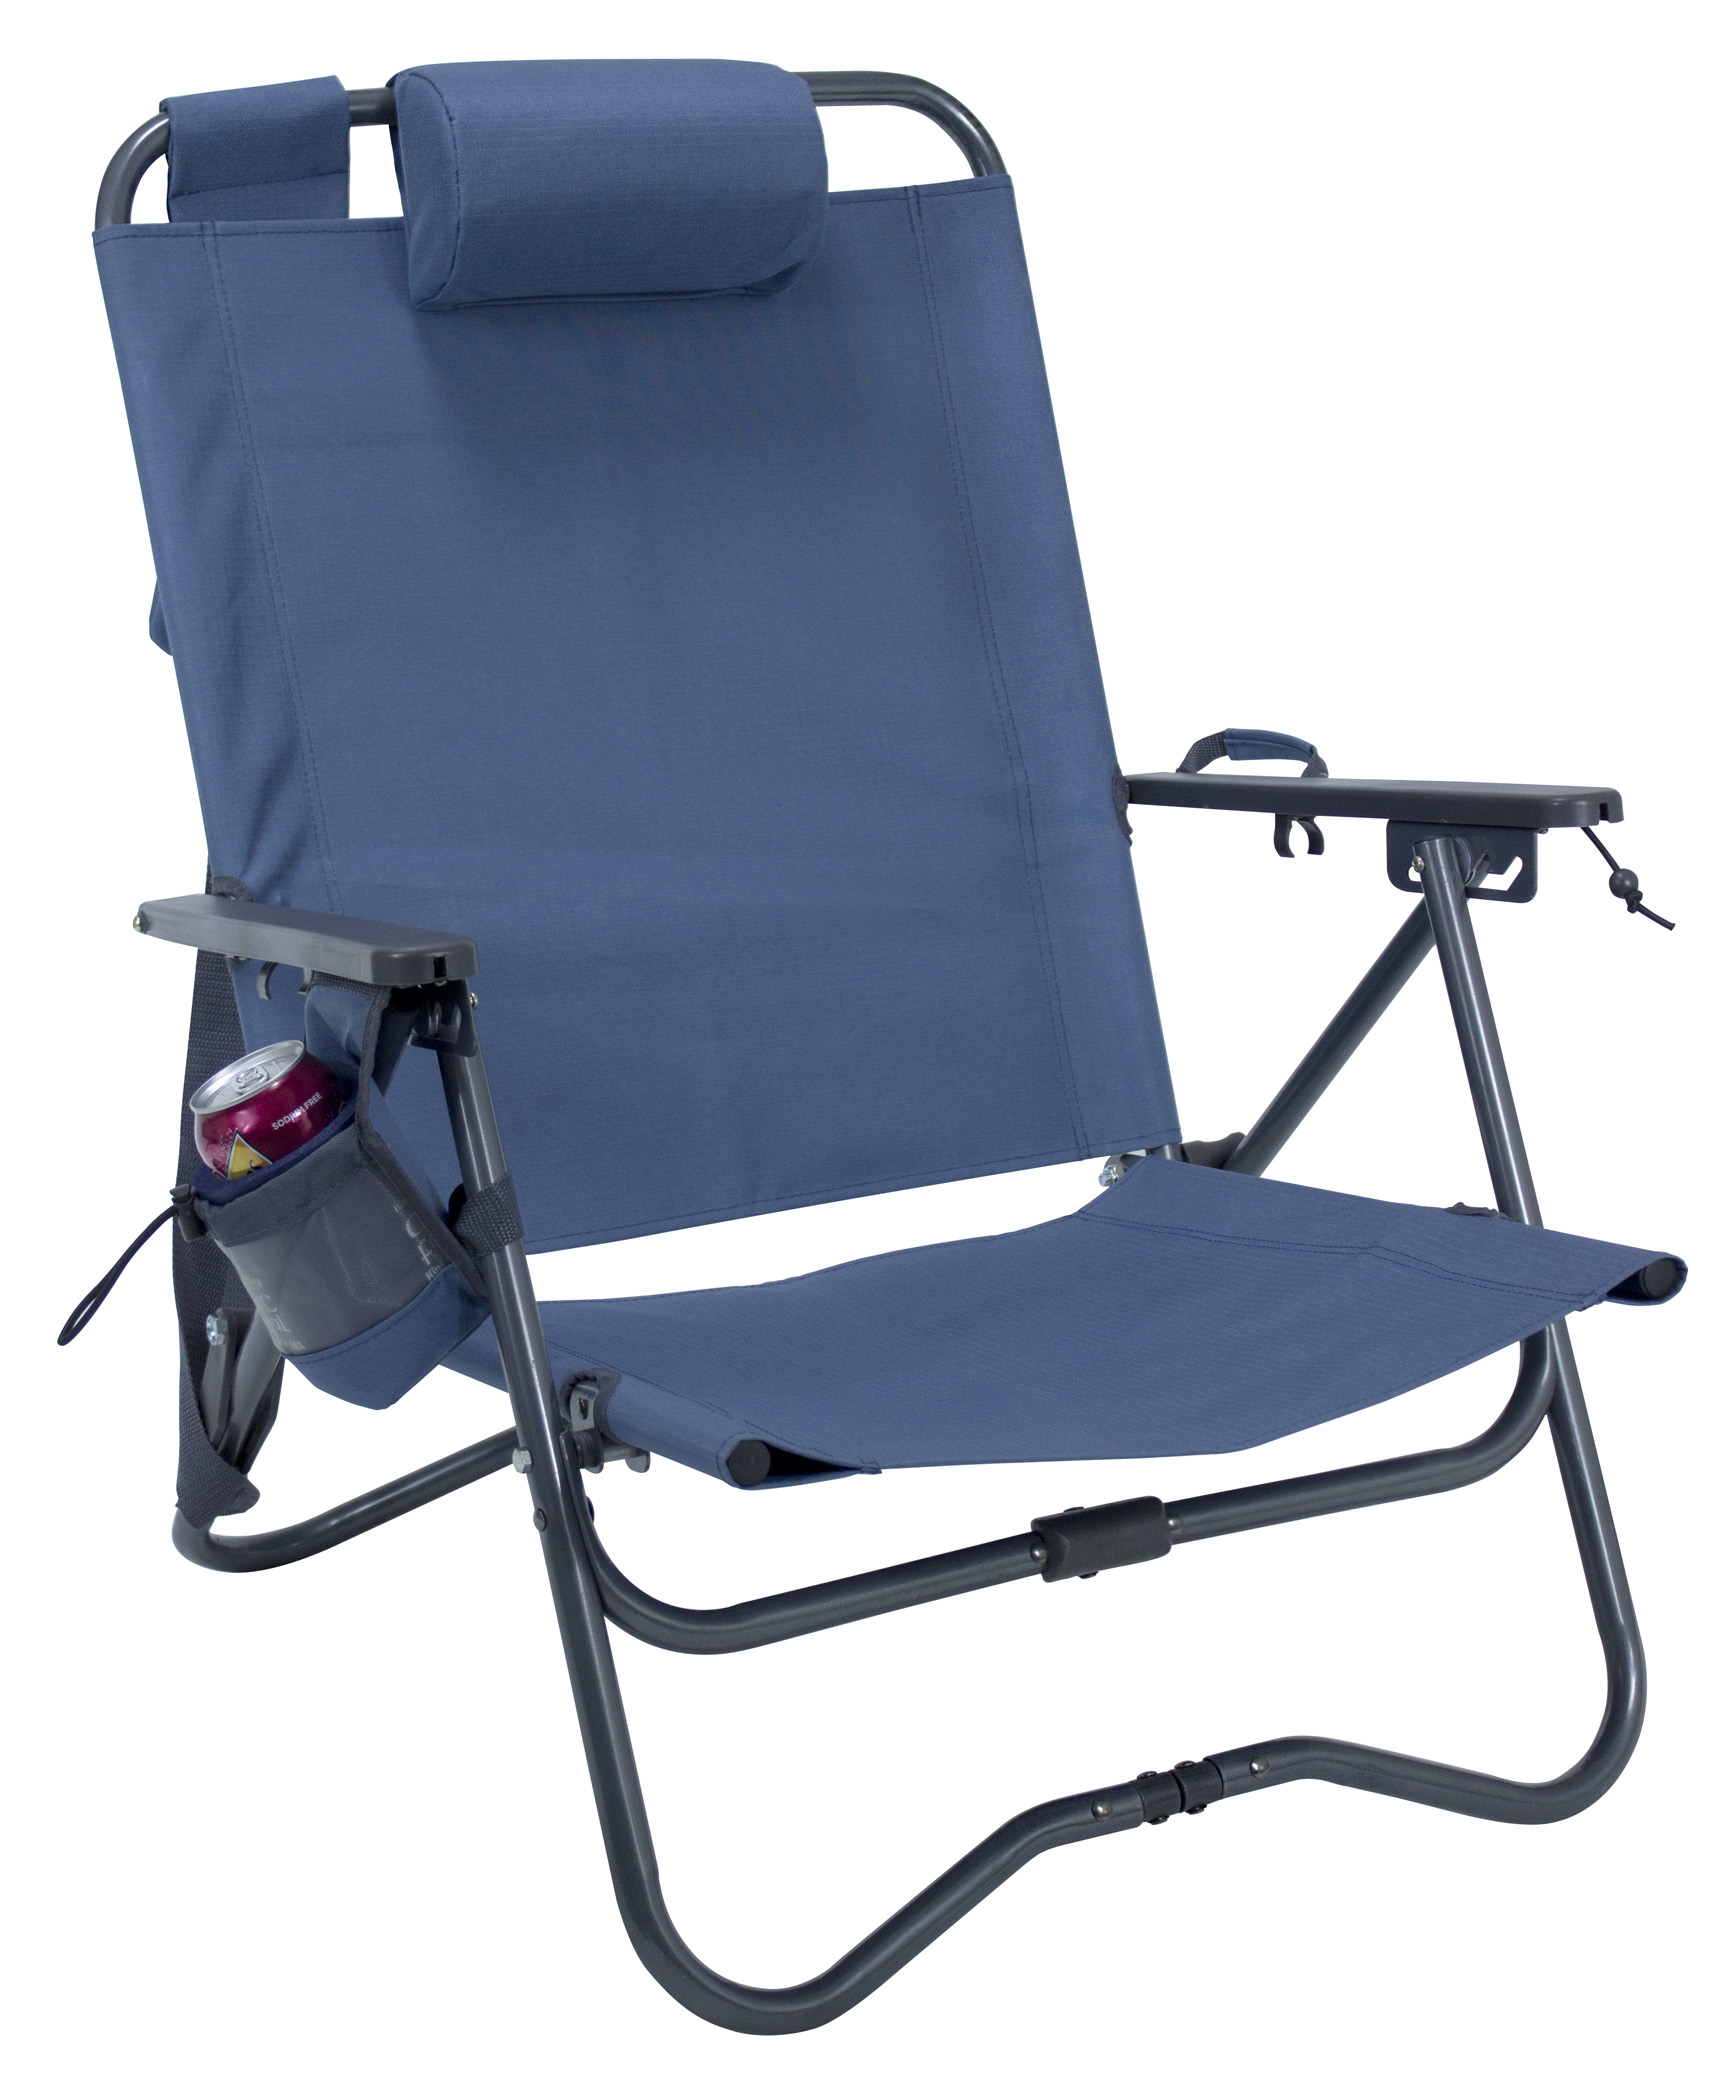 product lounger fishing el bbq portable folding chairs store picnic lightweight camping ultra outdoor indio hiking chair